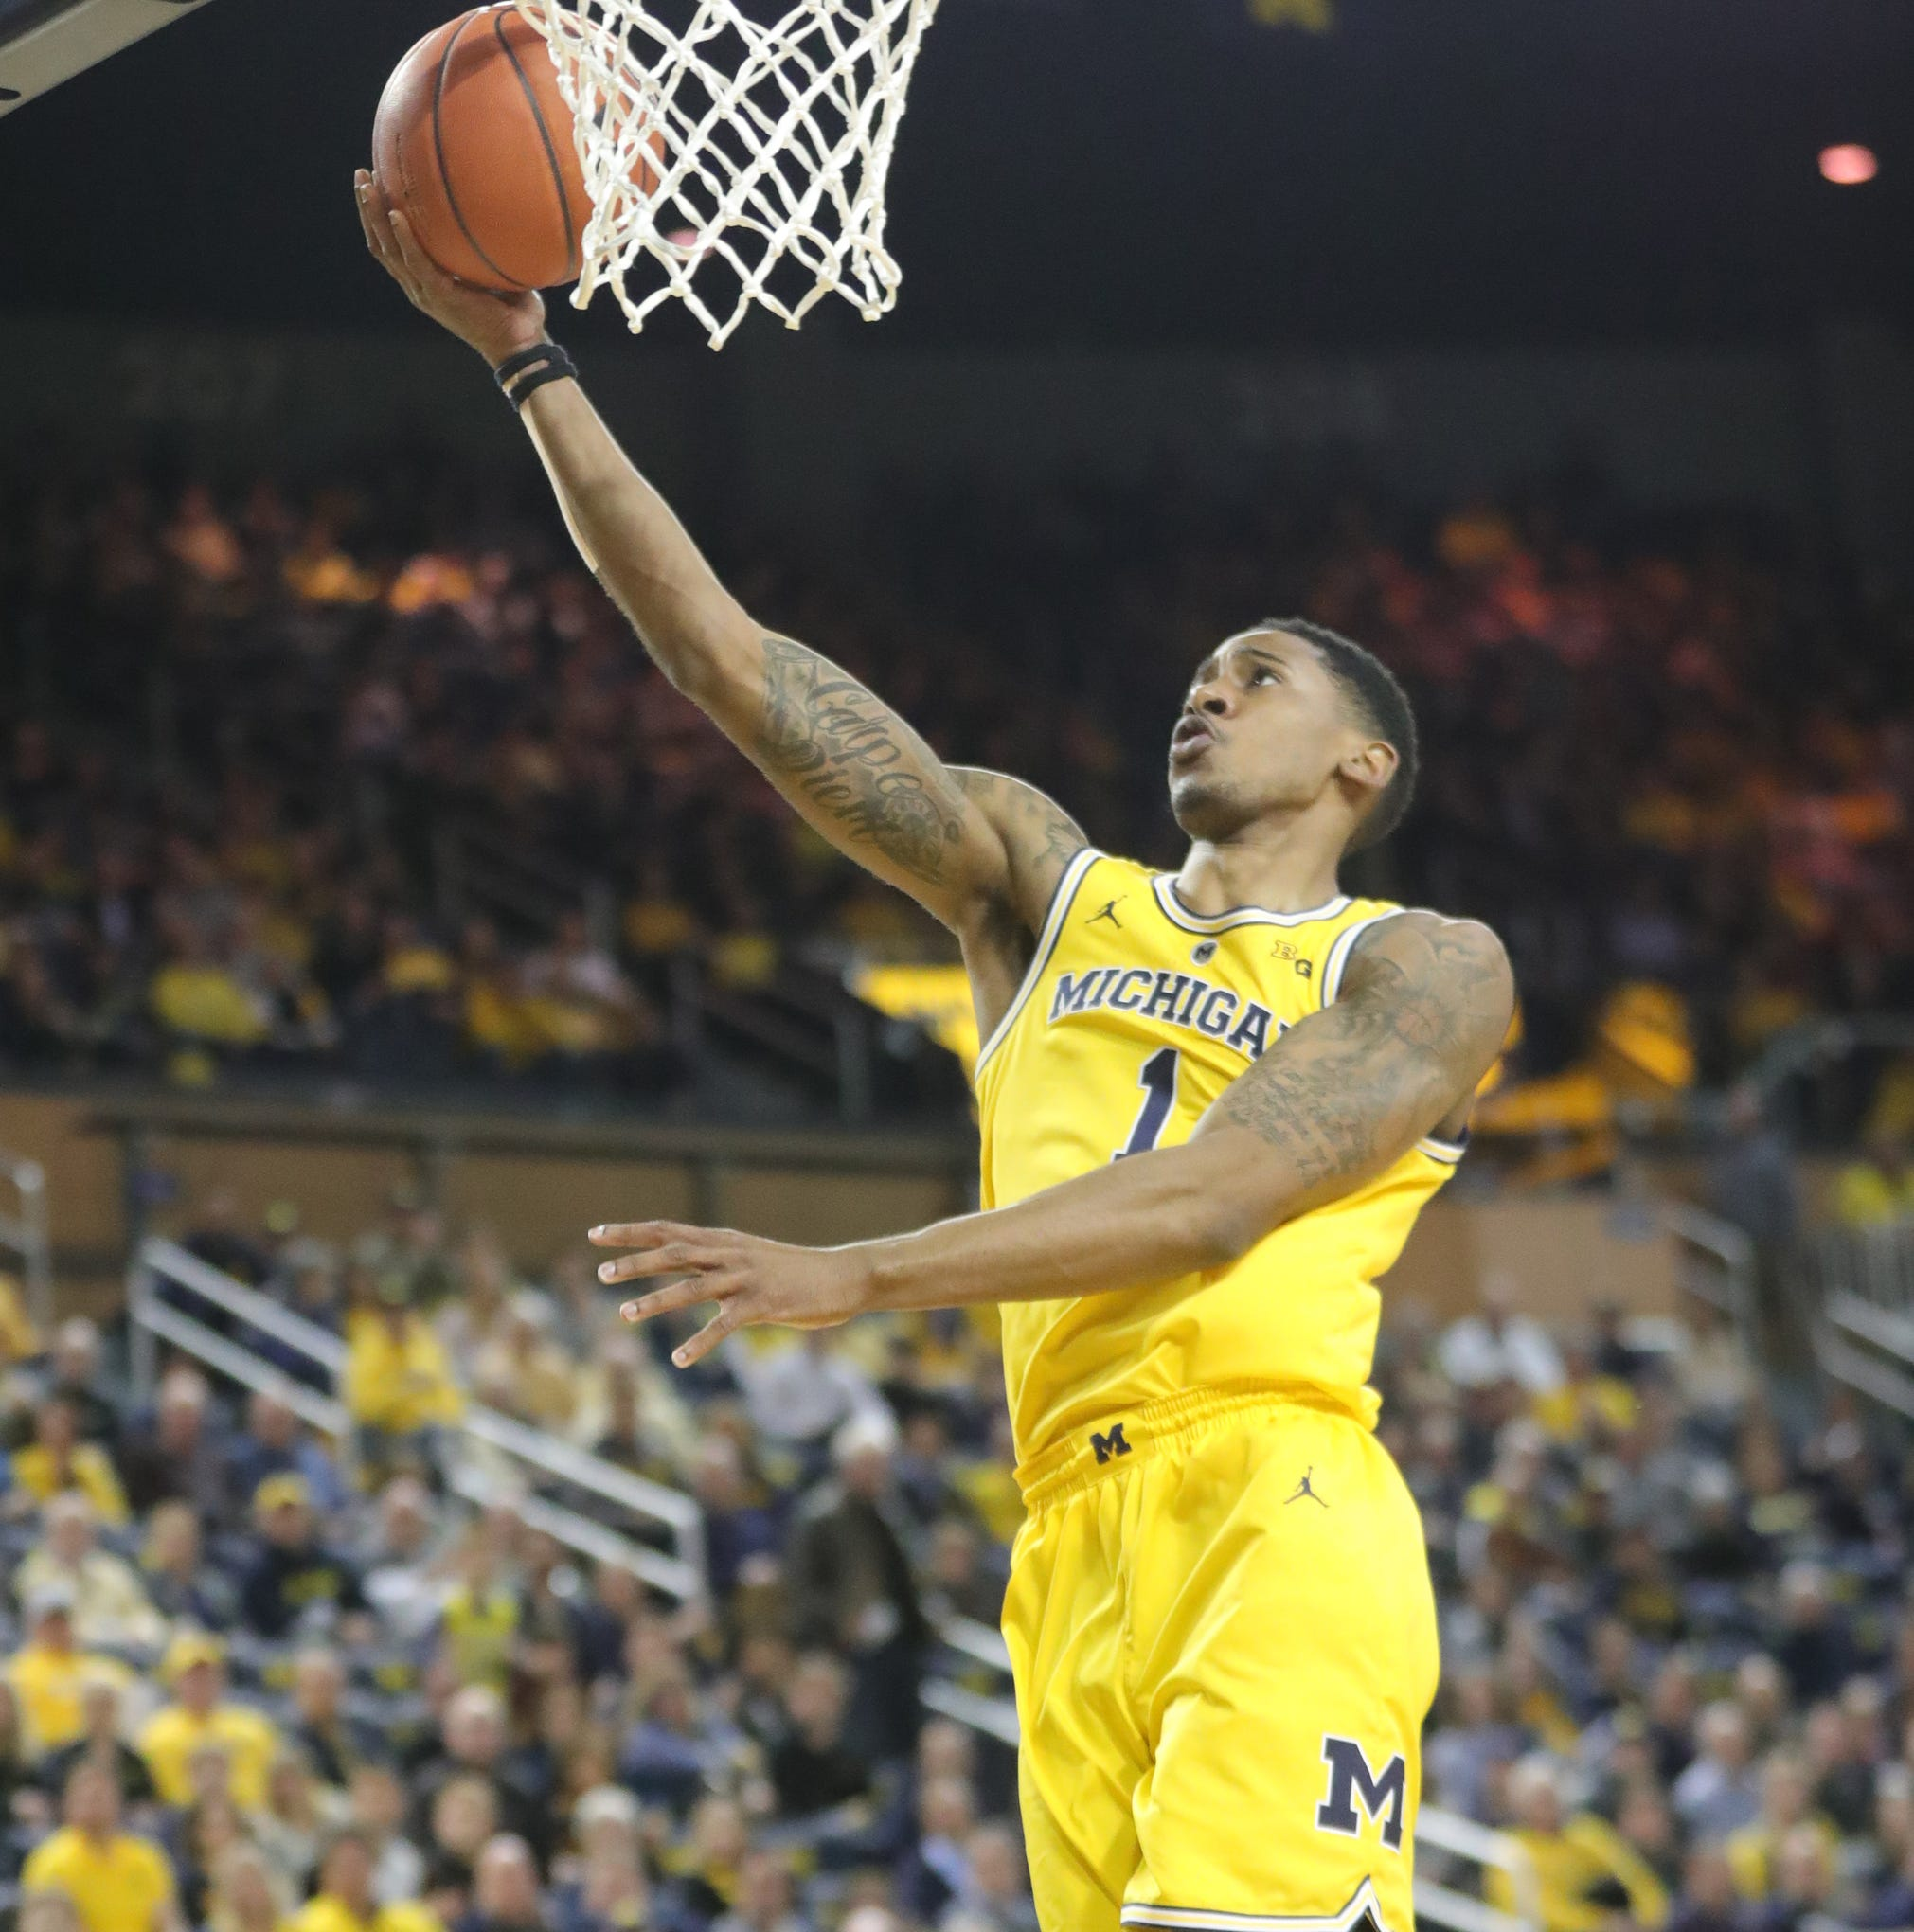 Michigan basketball vs. Minnesota: Scouting report, prediction